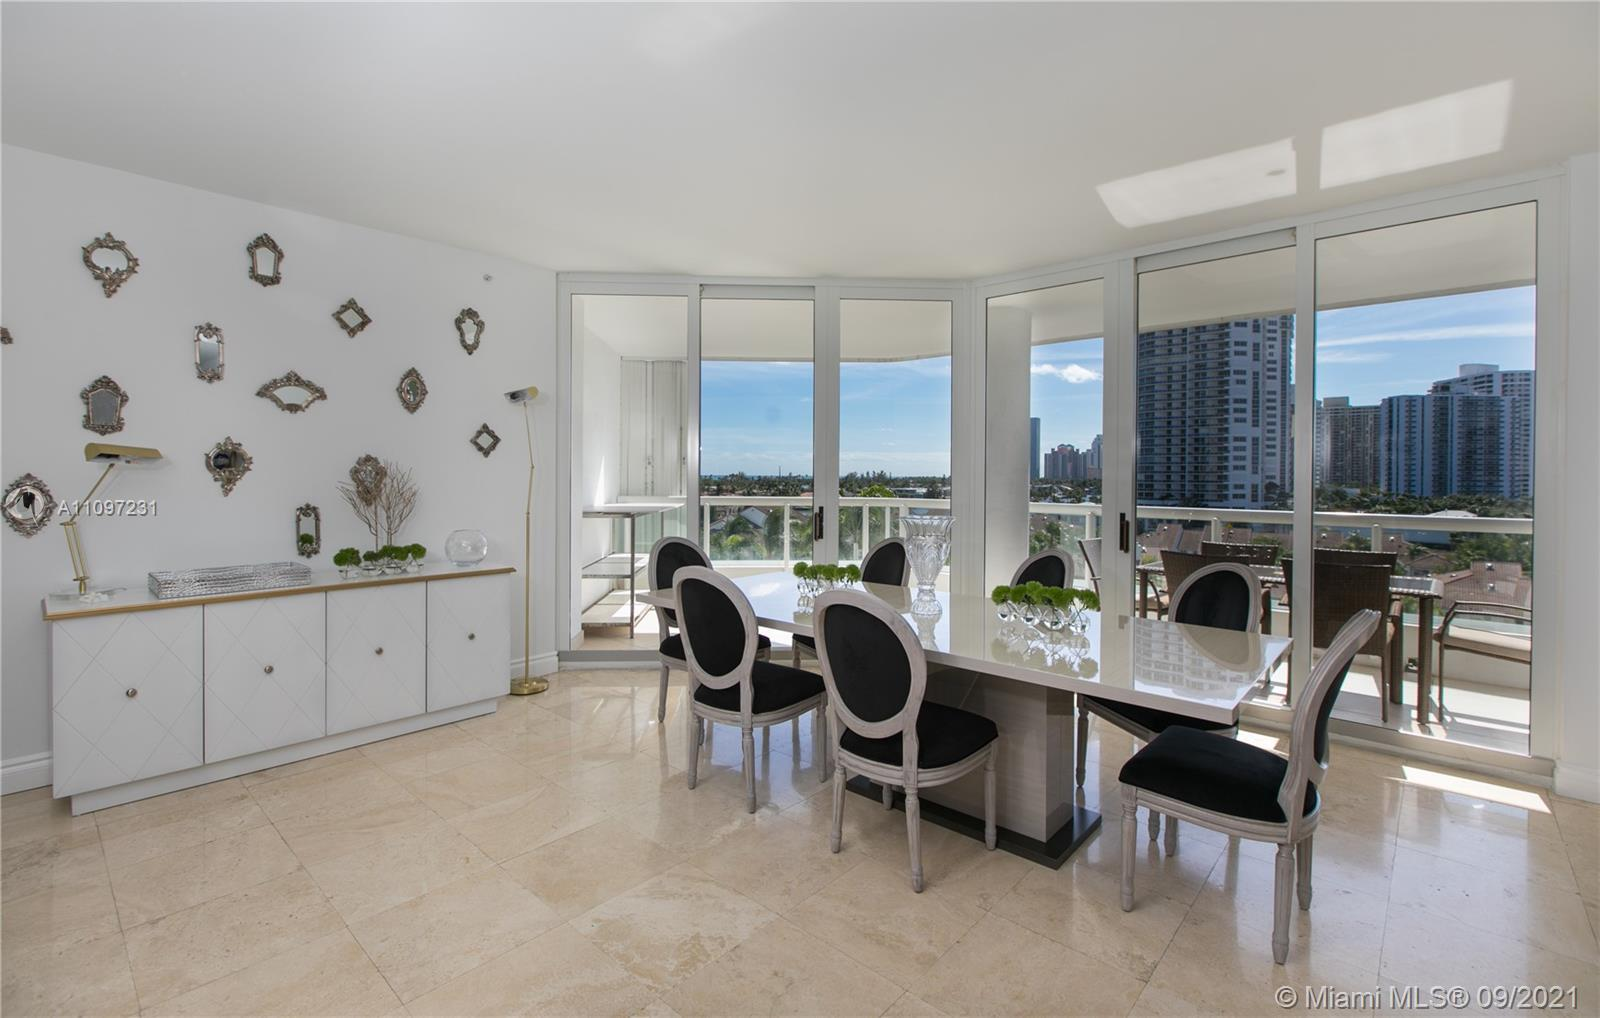 BRIGHT AND BEAUTIFUL.  THIS FABULOUS 7TH FLOOR RESIDENCE LOCATED AT THE ATLANTIC lll AT THE POINT IN